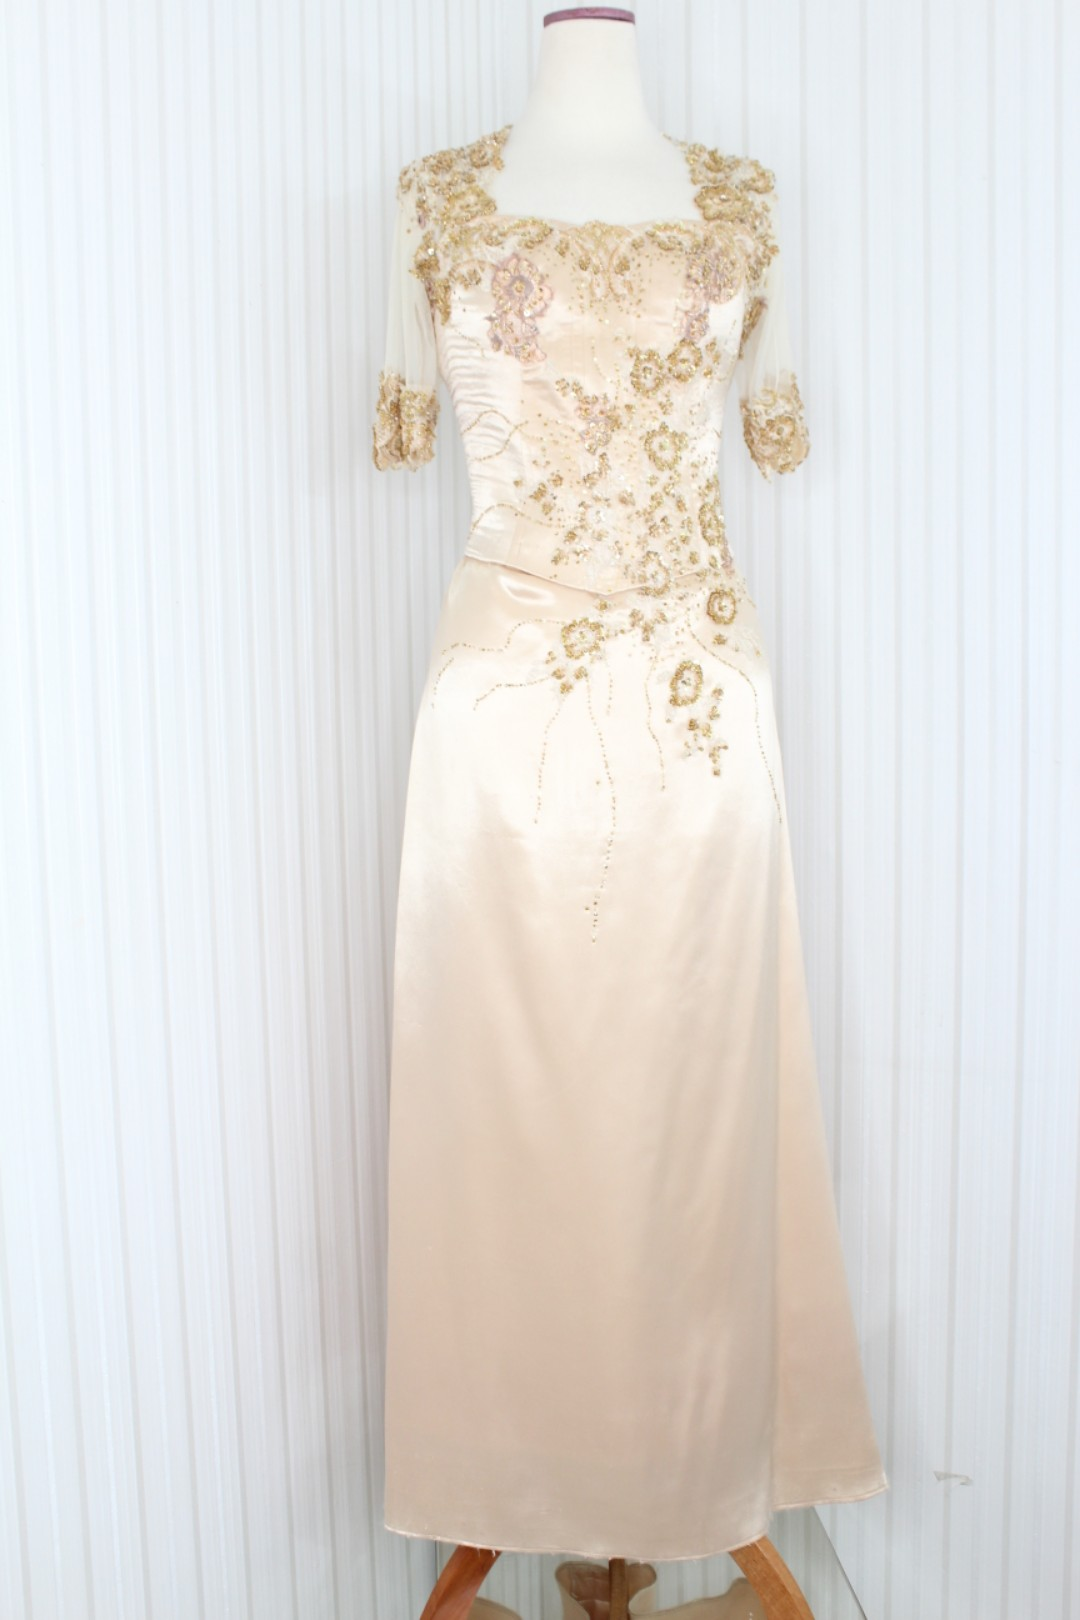 Gaun Pesta Gaun Malam Long Dress Warna Gold 6505 Olshop Fashion